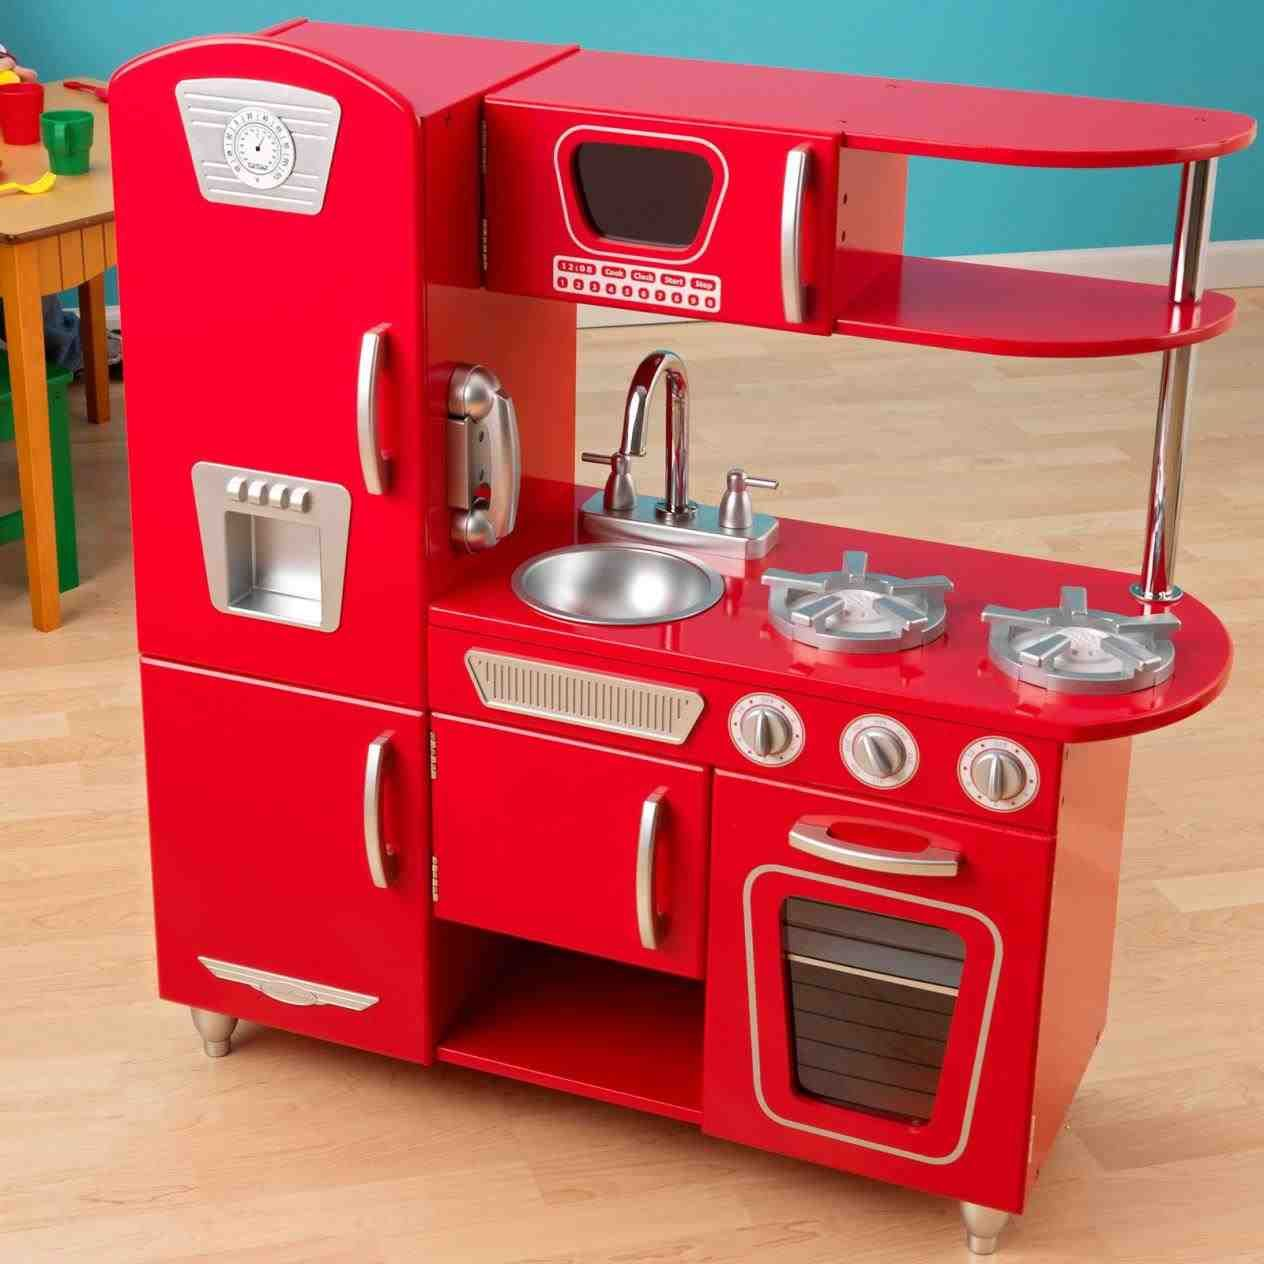 New wooden kitchen set for kids at temasistemi net